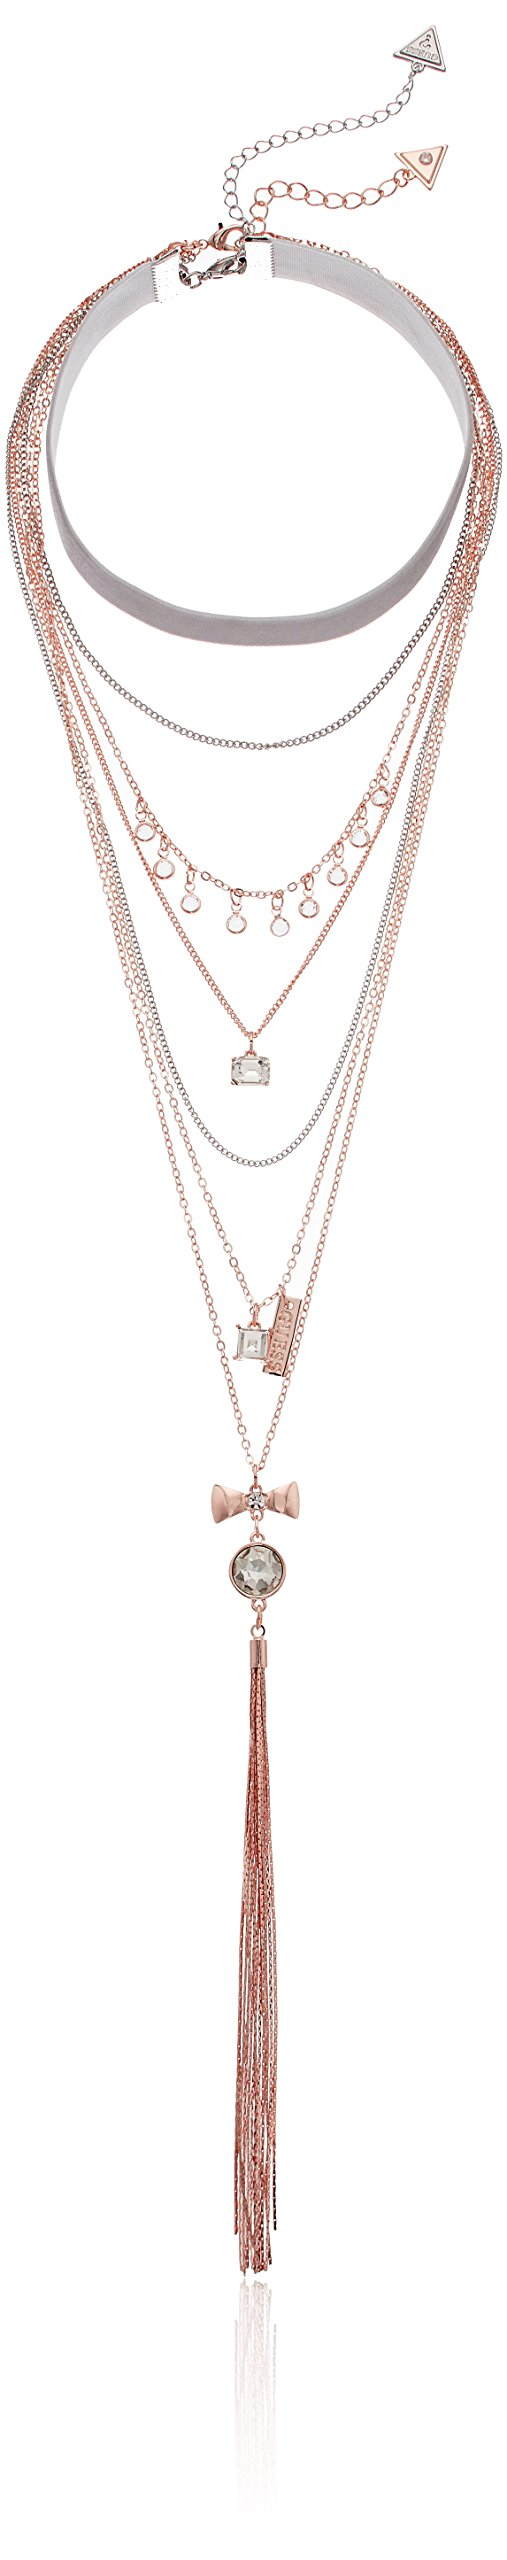 GUESS Duo Layered Neck W Stones Y Shaped Necklace, Silver, One Size